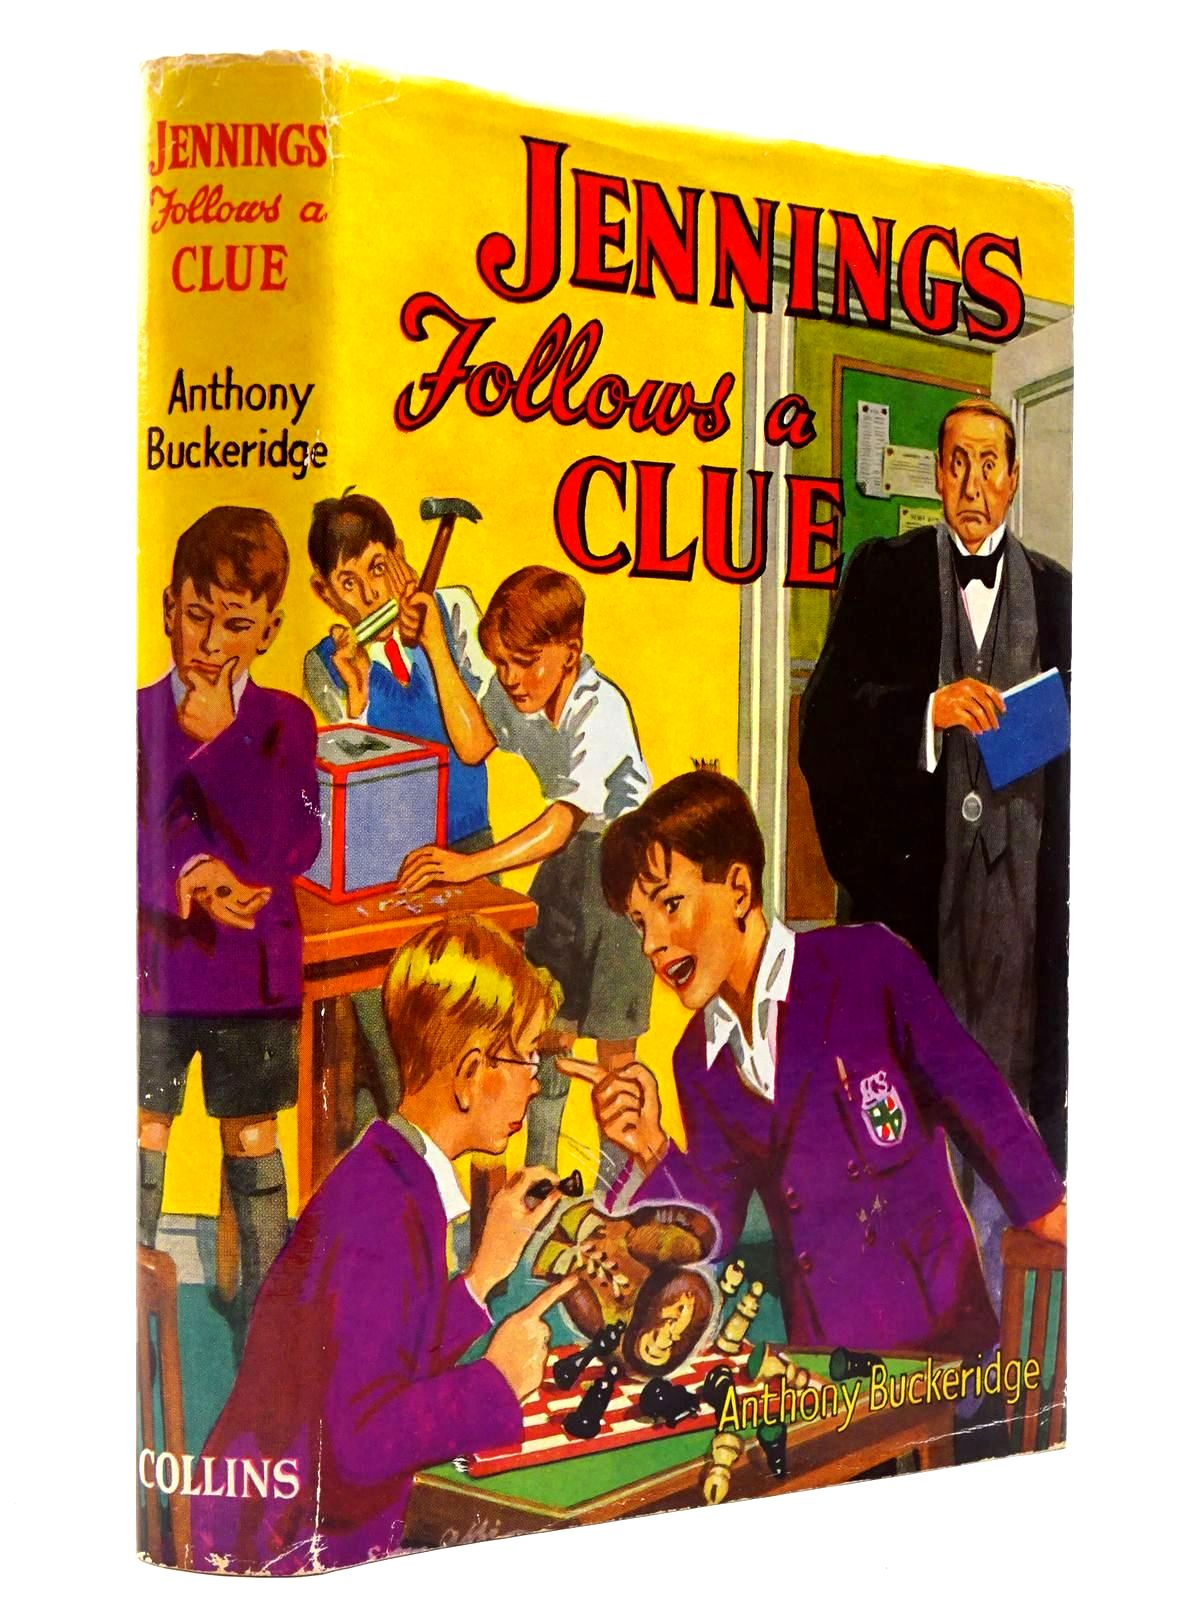 Photo of JENNINGS FOLLOWS A CLUE written by Buckeridge, Anthony published by Collins (STOCK CODE: 2130508)  for sale by Stella & Rose's Books